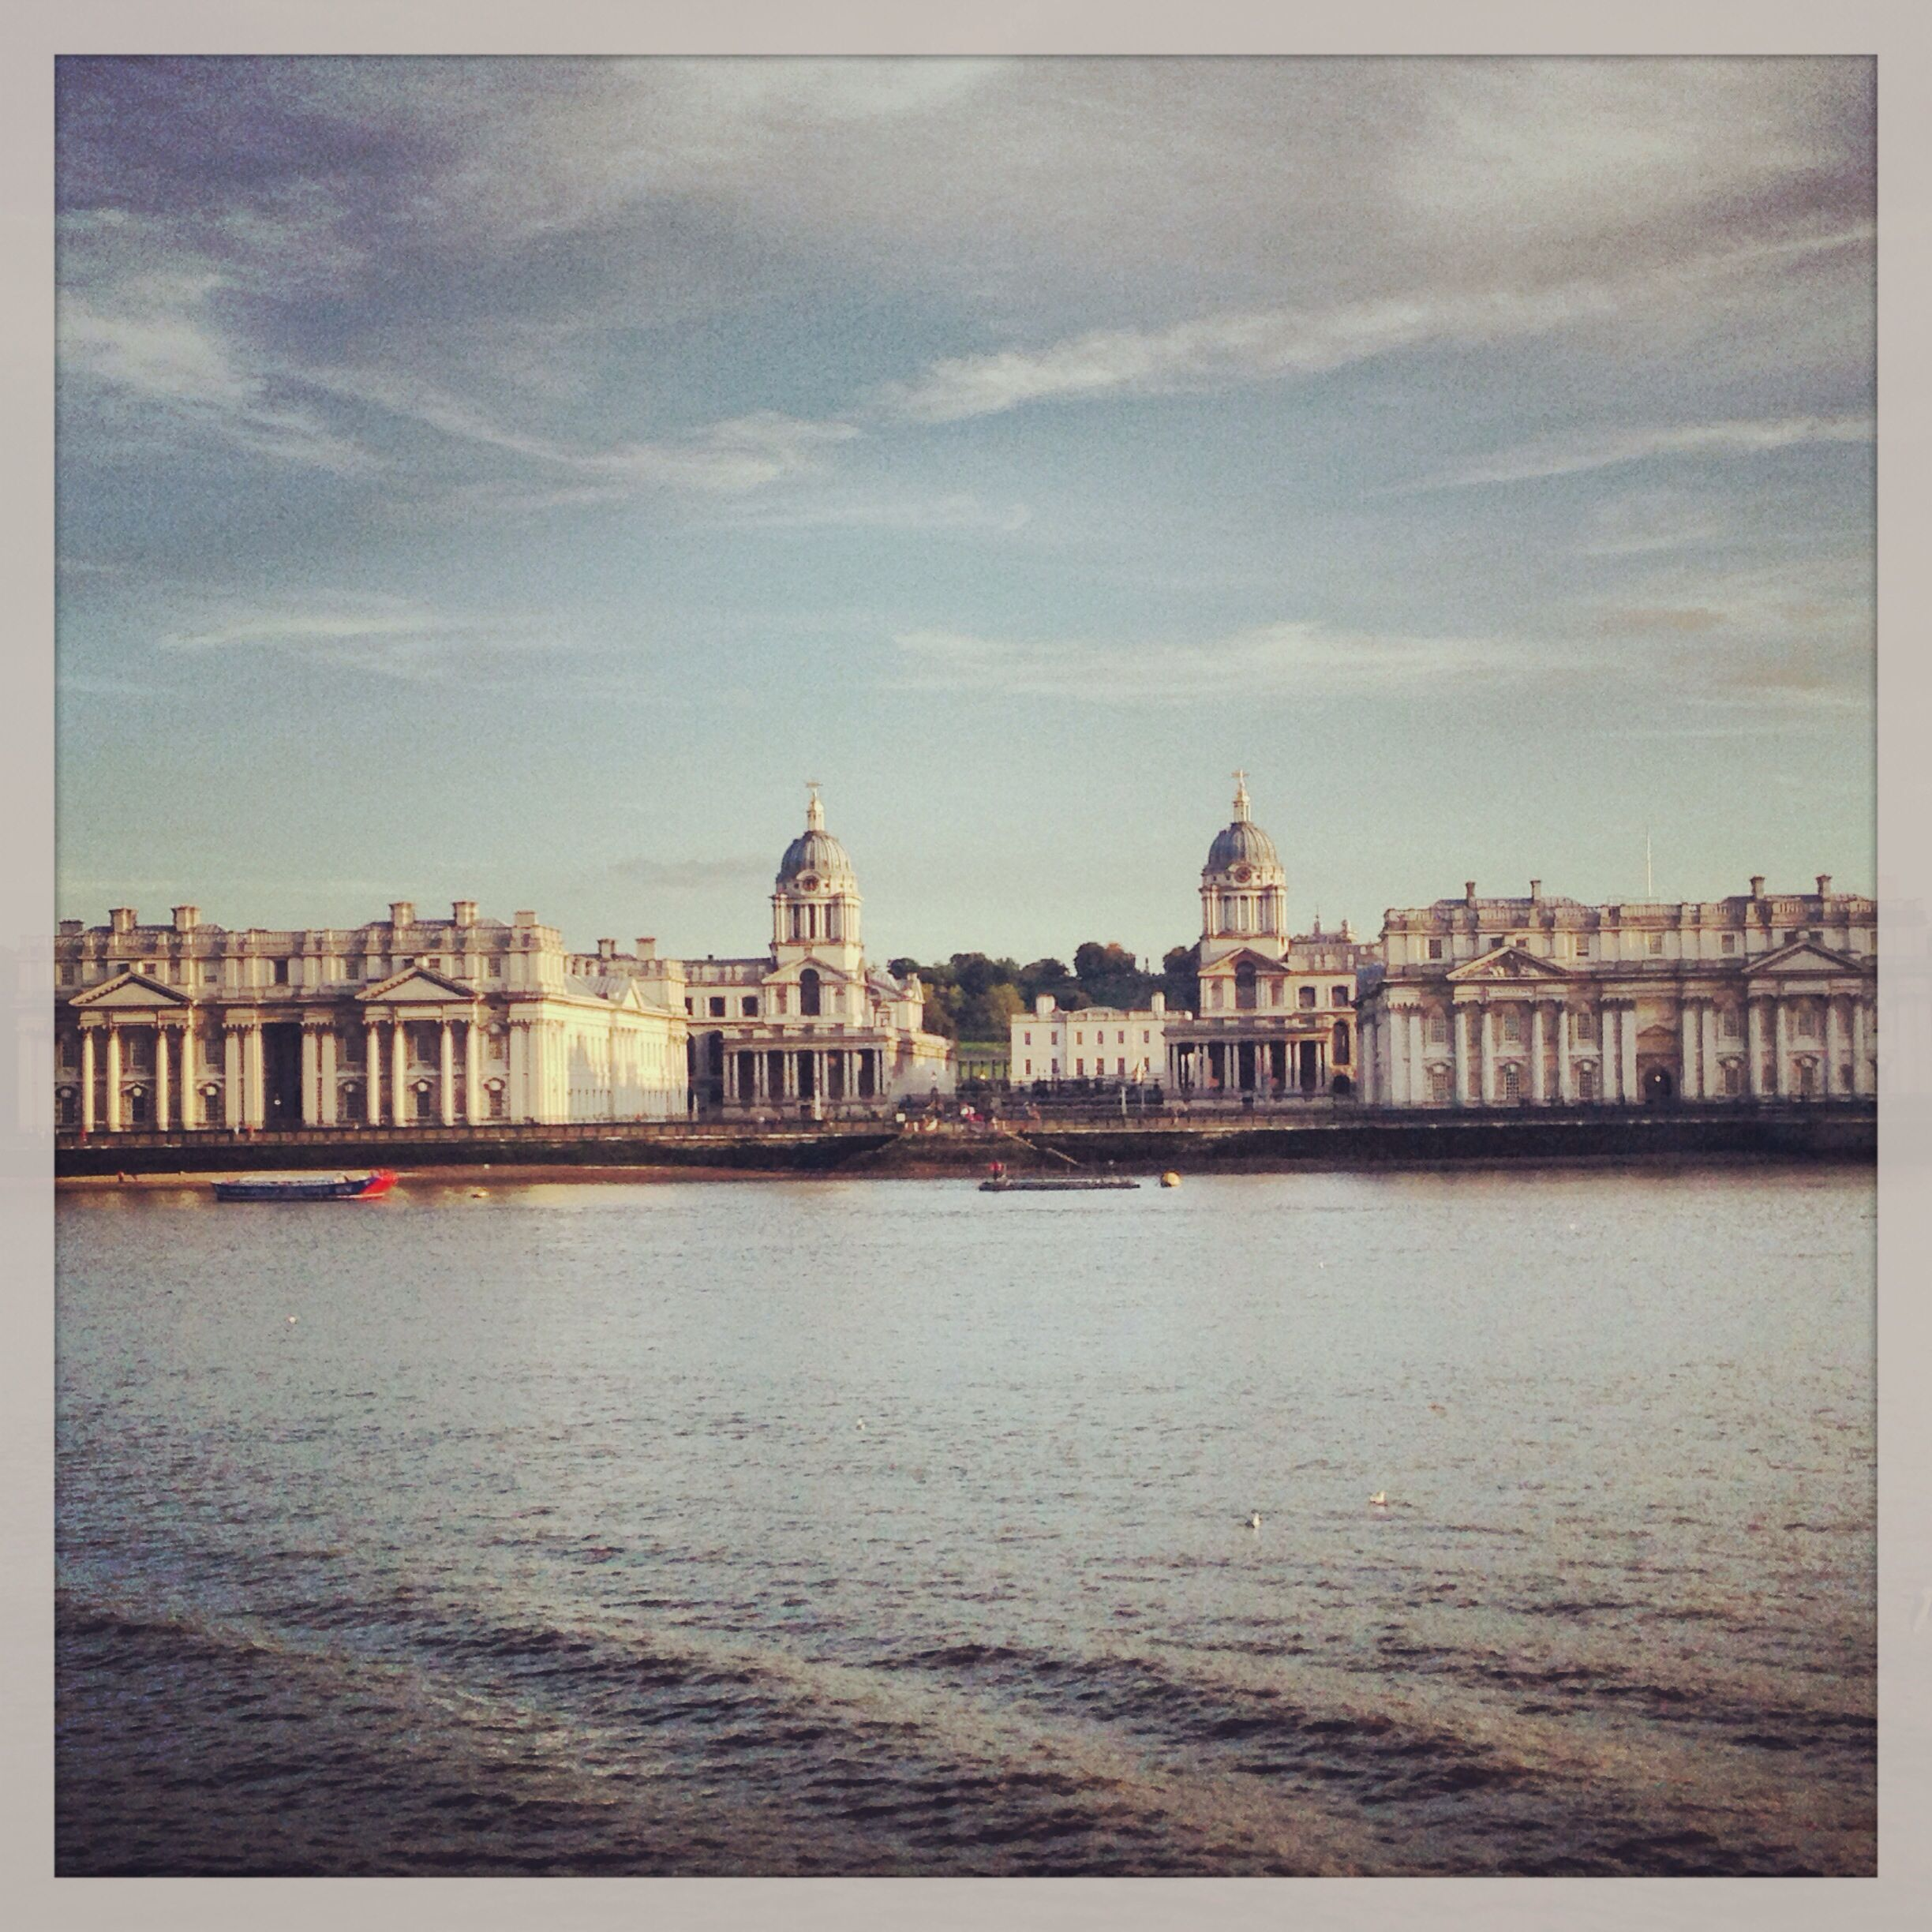 View of the Old Royal Naval College